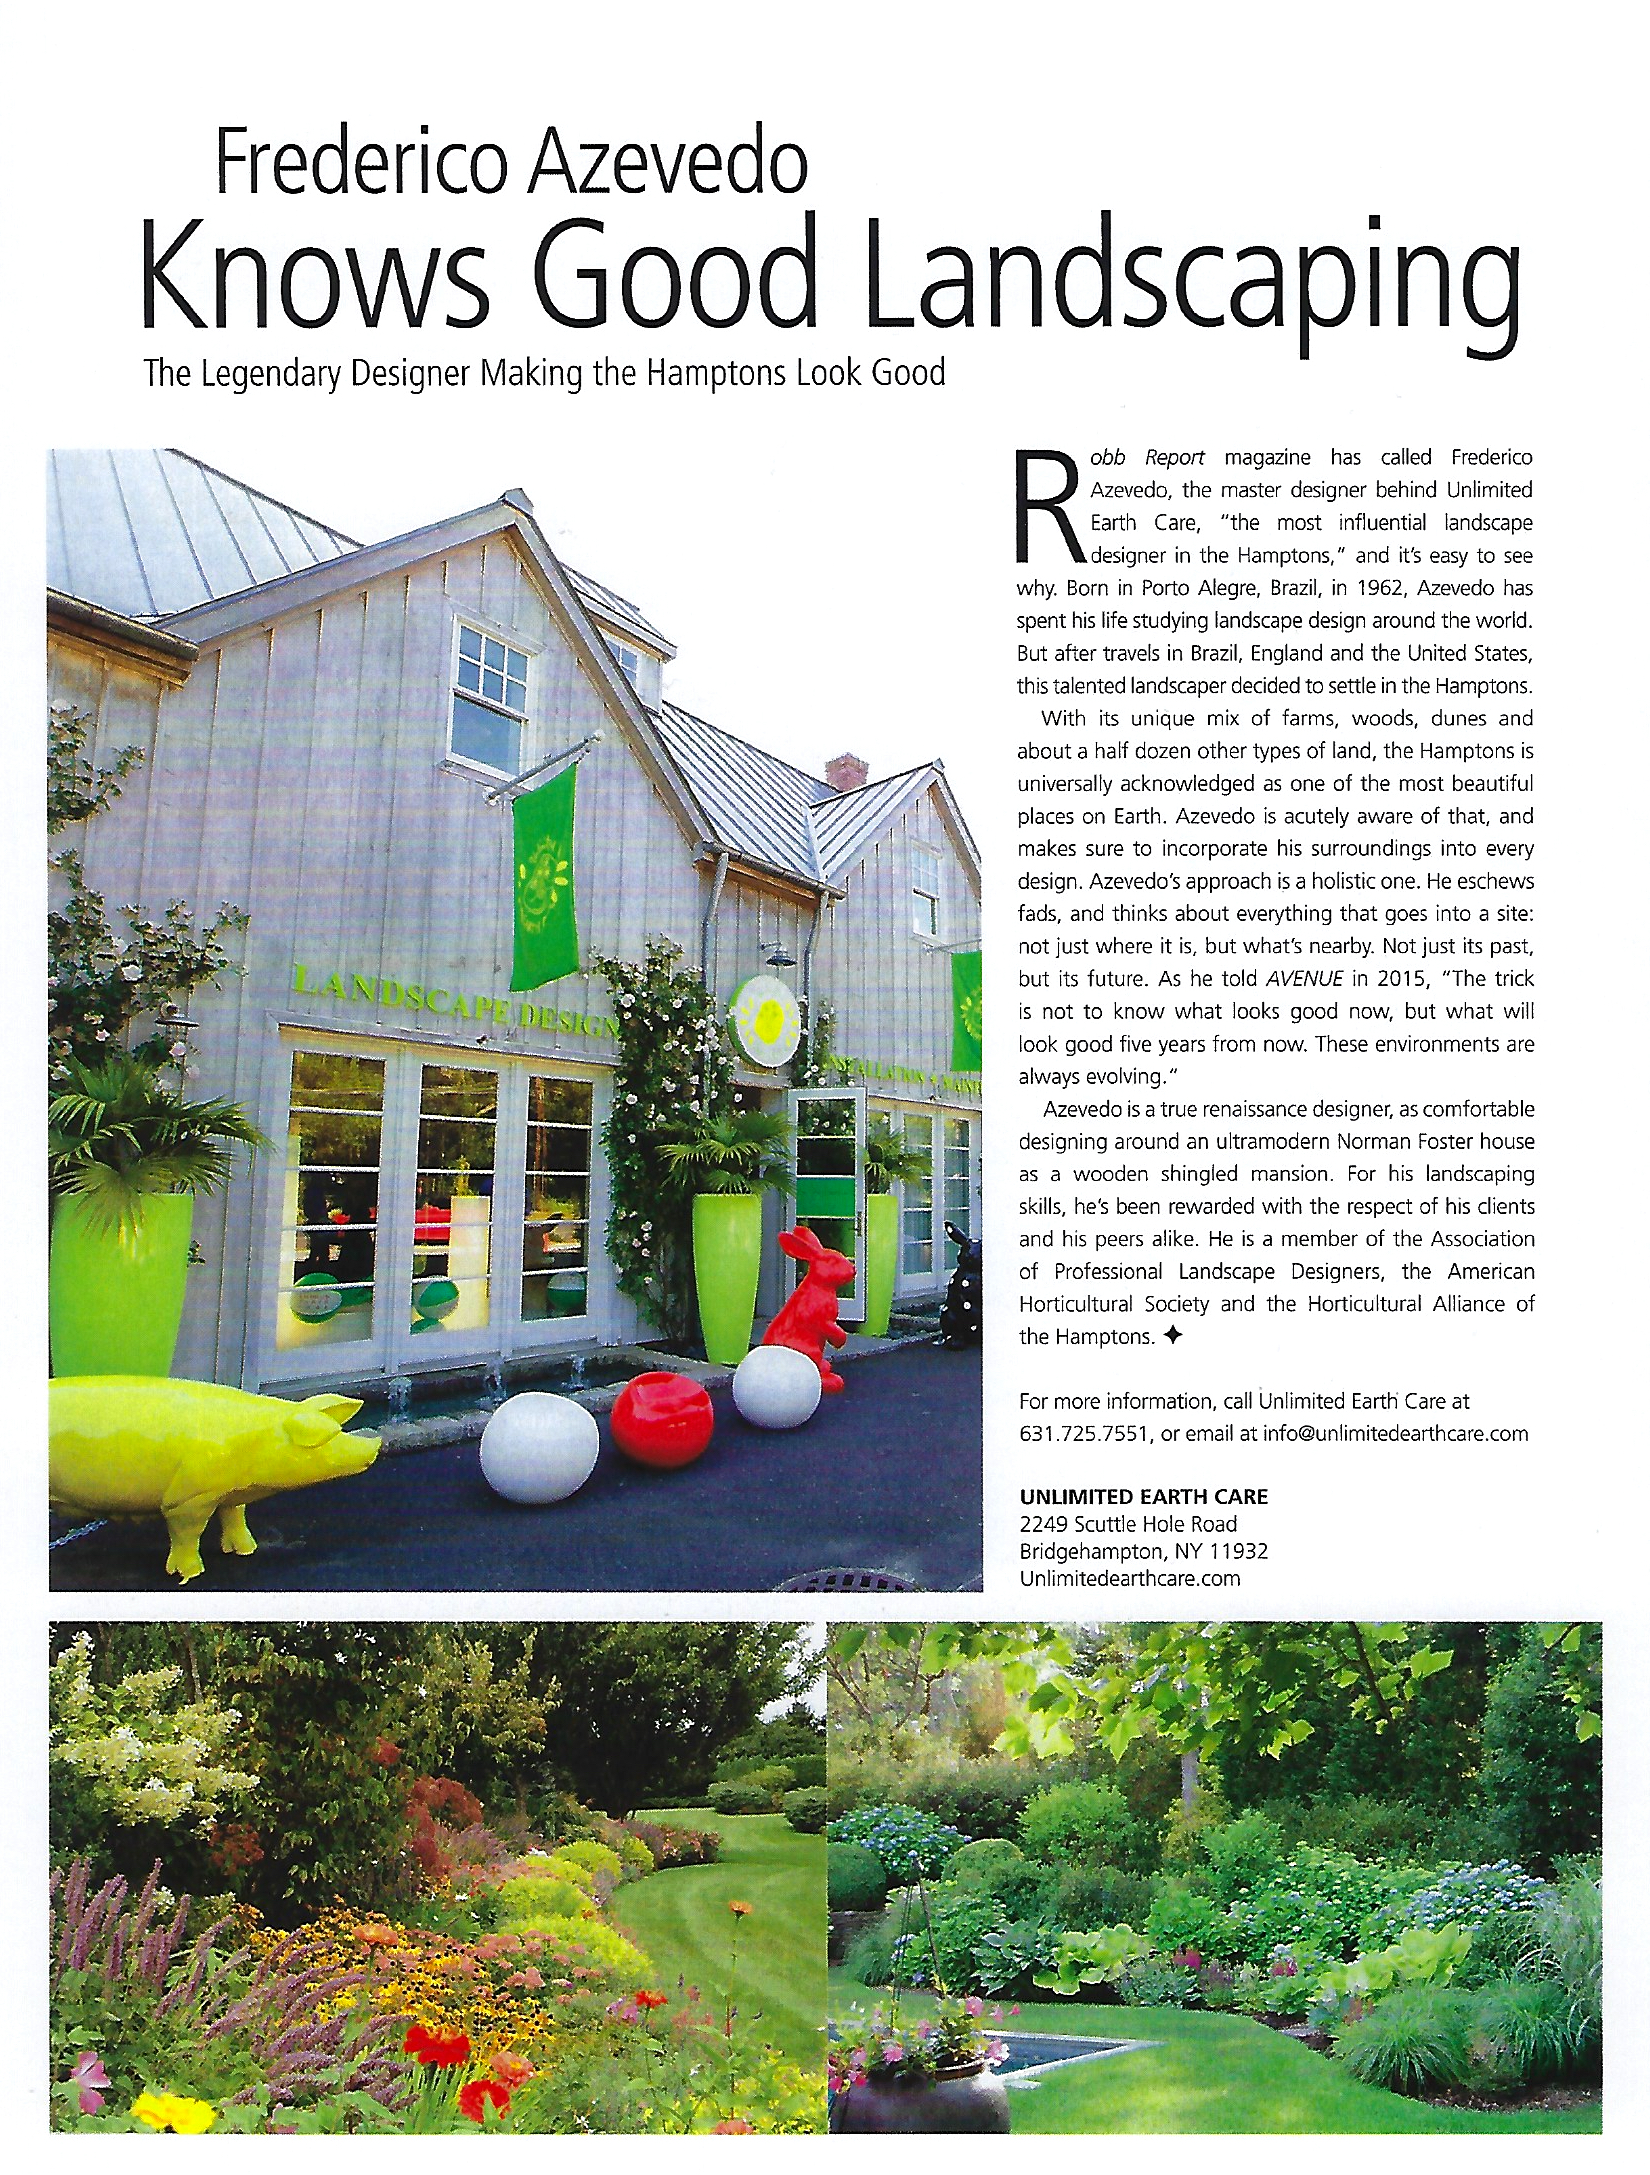 Avenue Magazine - FA Knows Good Landscaping_June 2017 1.jpg